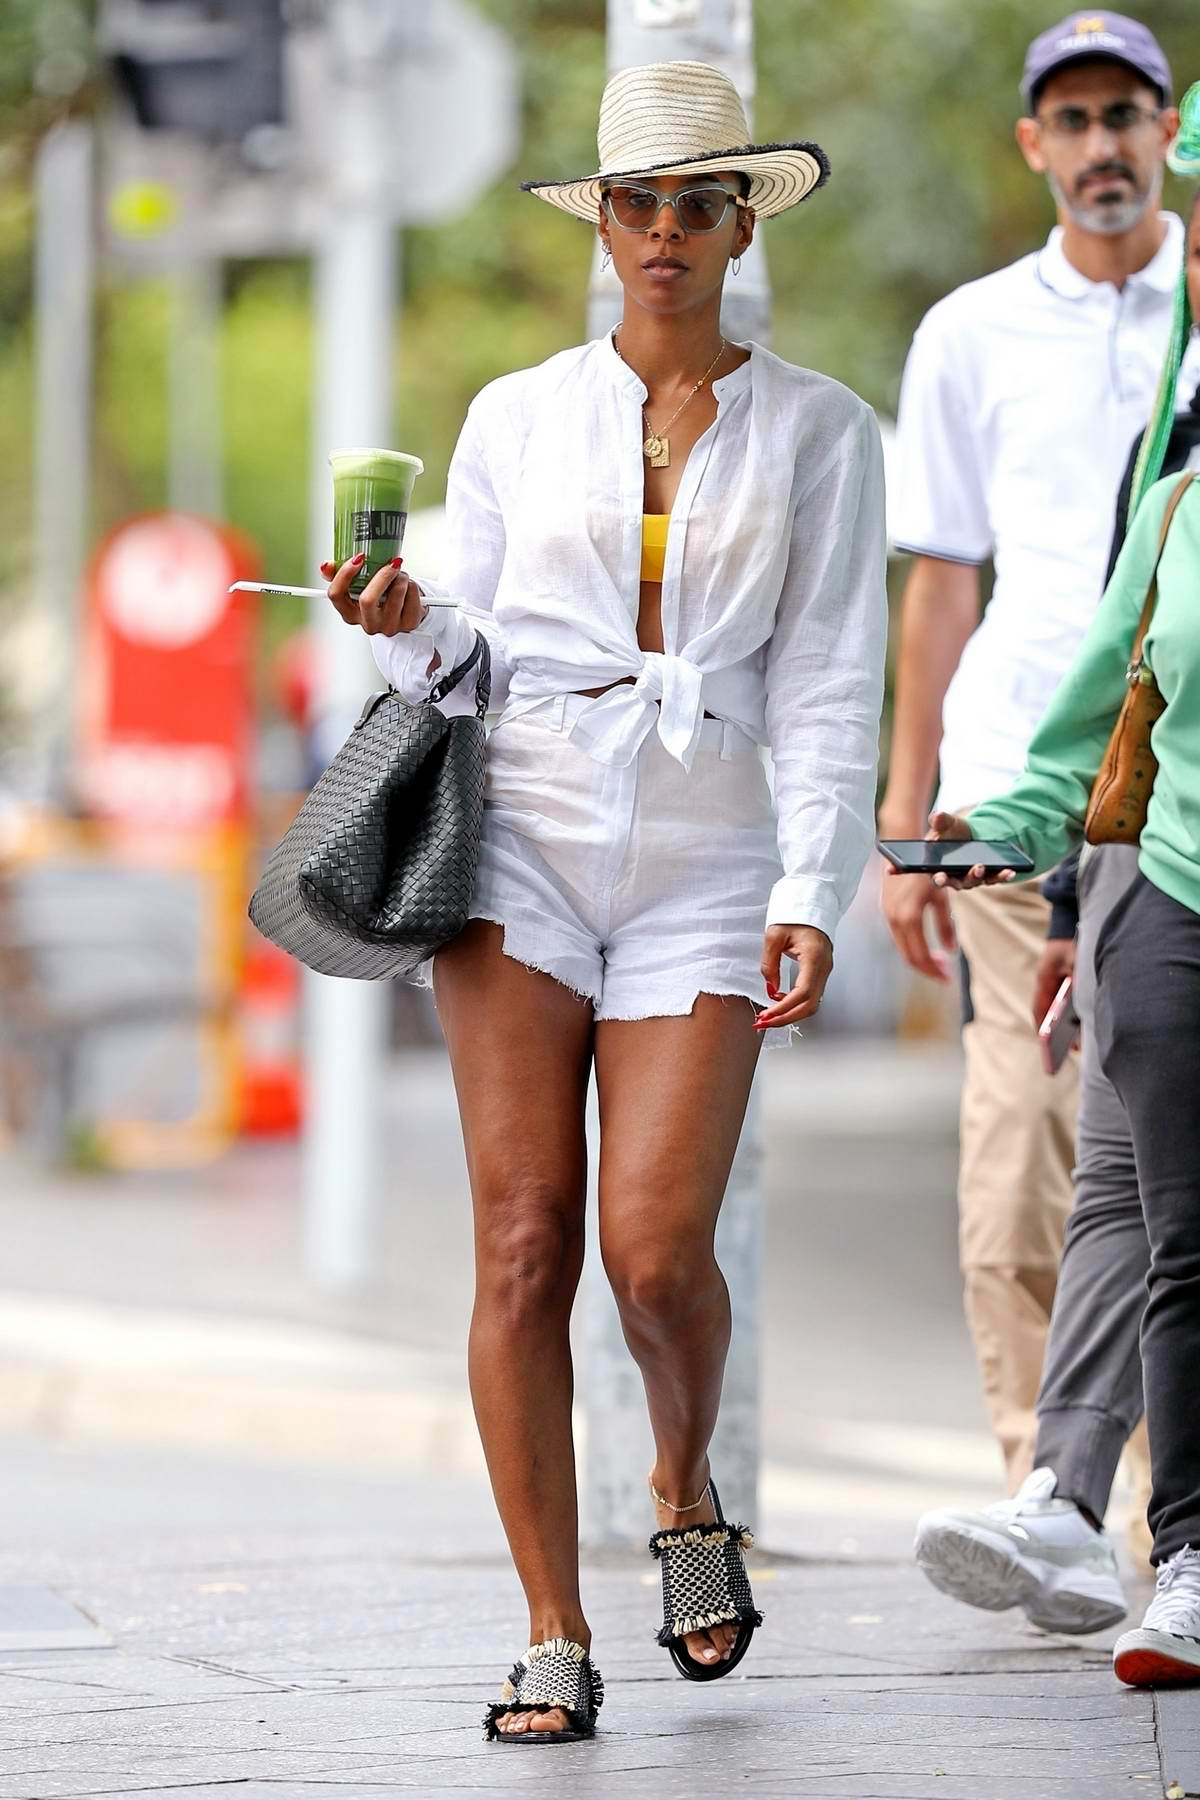 Kelly Rowland dons all-white while out at the Bondi Junction shopping center in Sydney, Australia